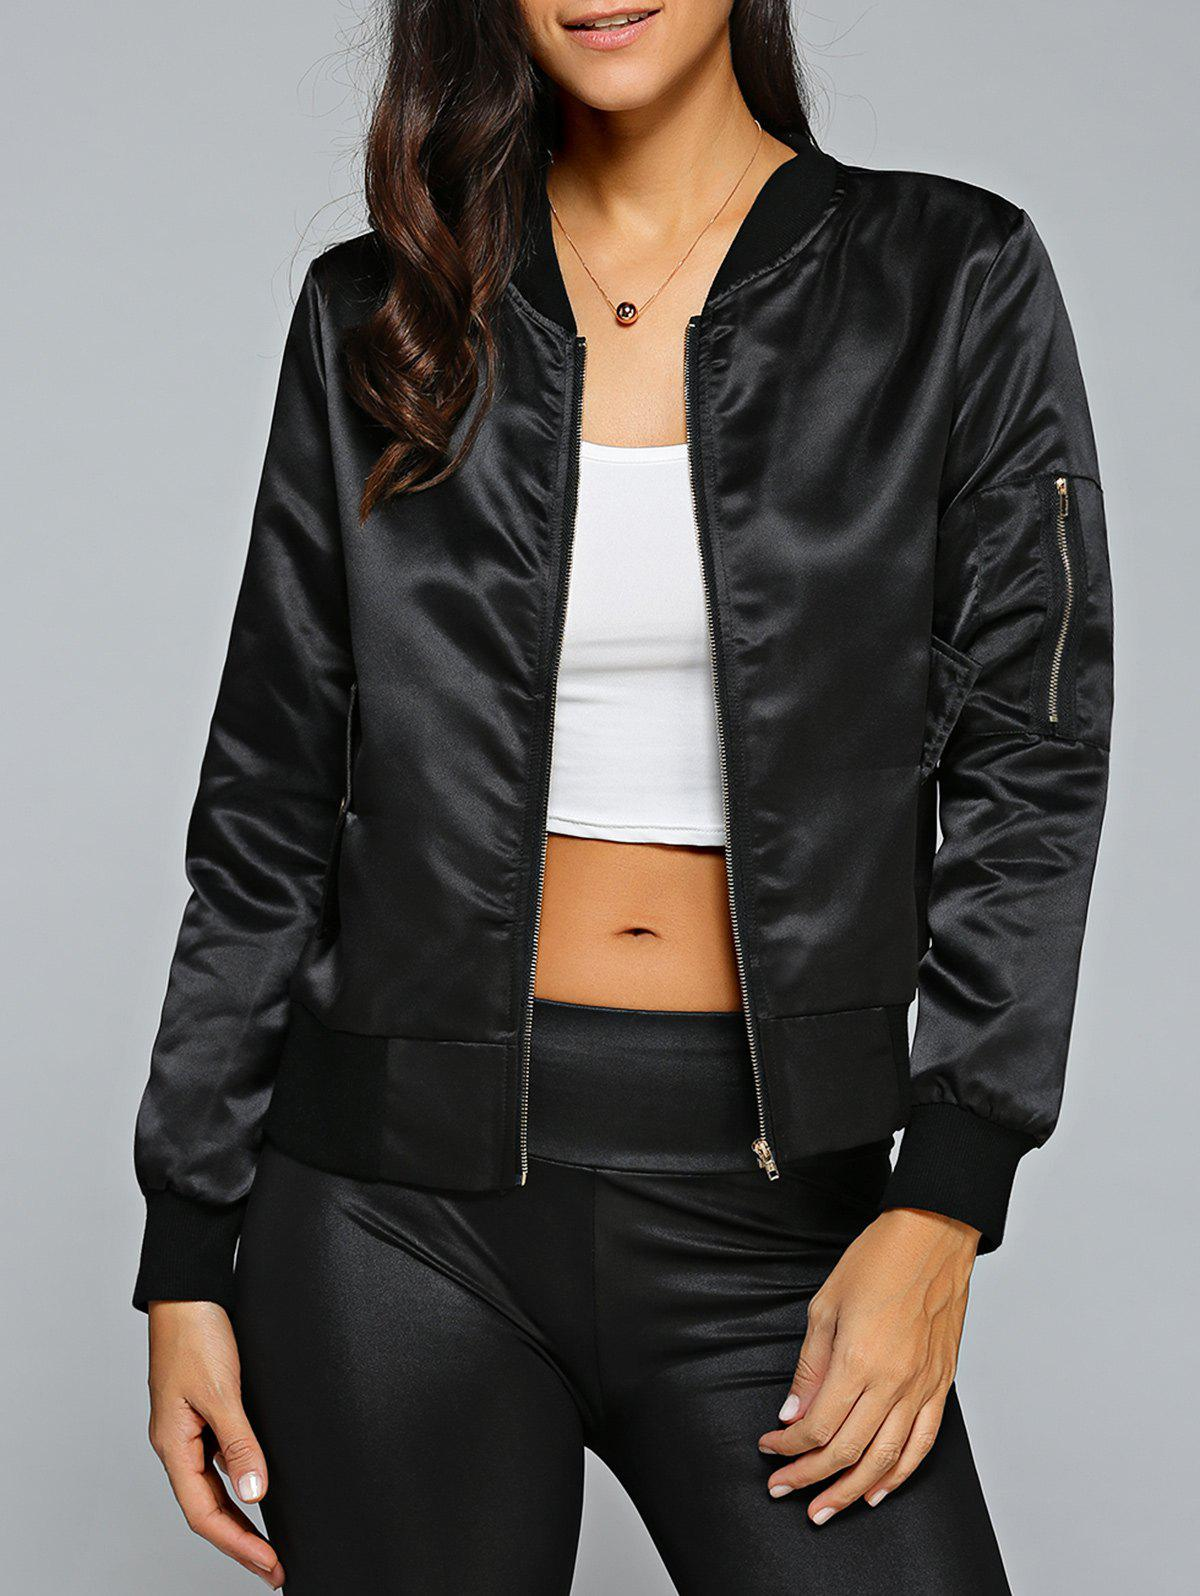 Satin Zip Up Bomber Jacket - BLACK M